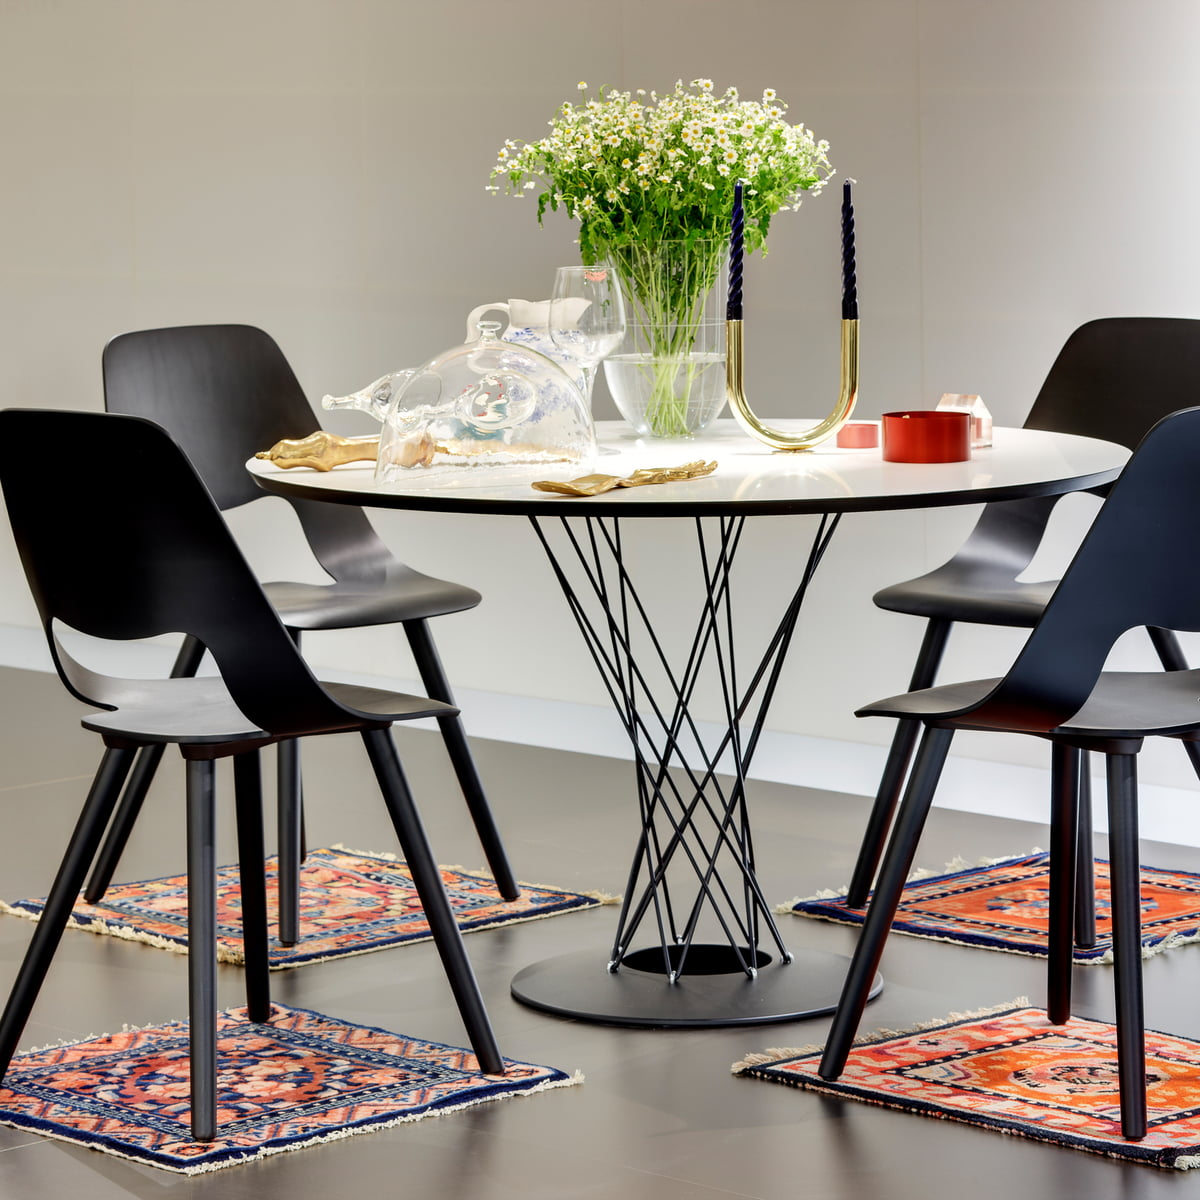 Round Dining Table with Metal Support and Base featured with other furniture